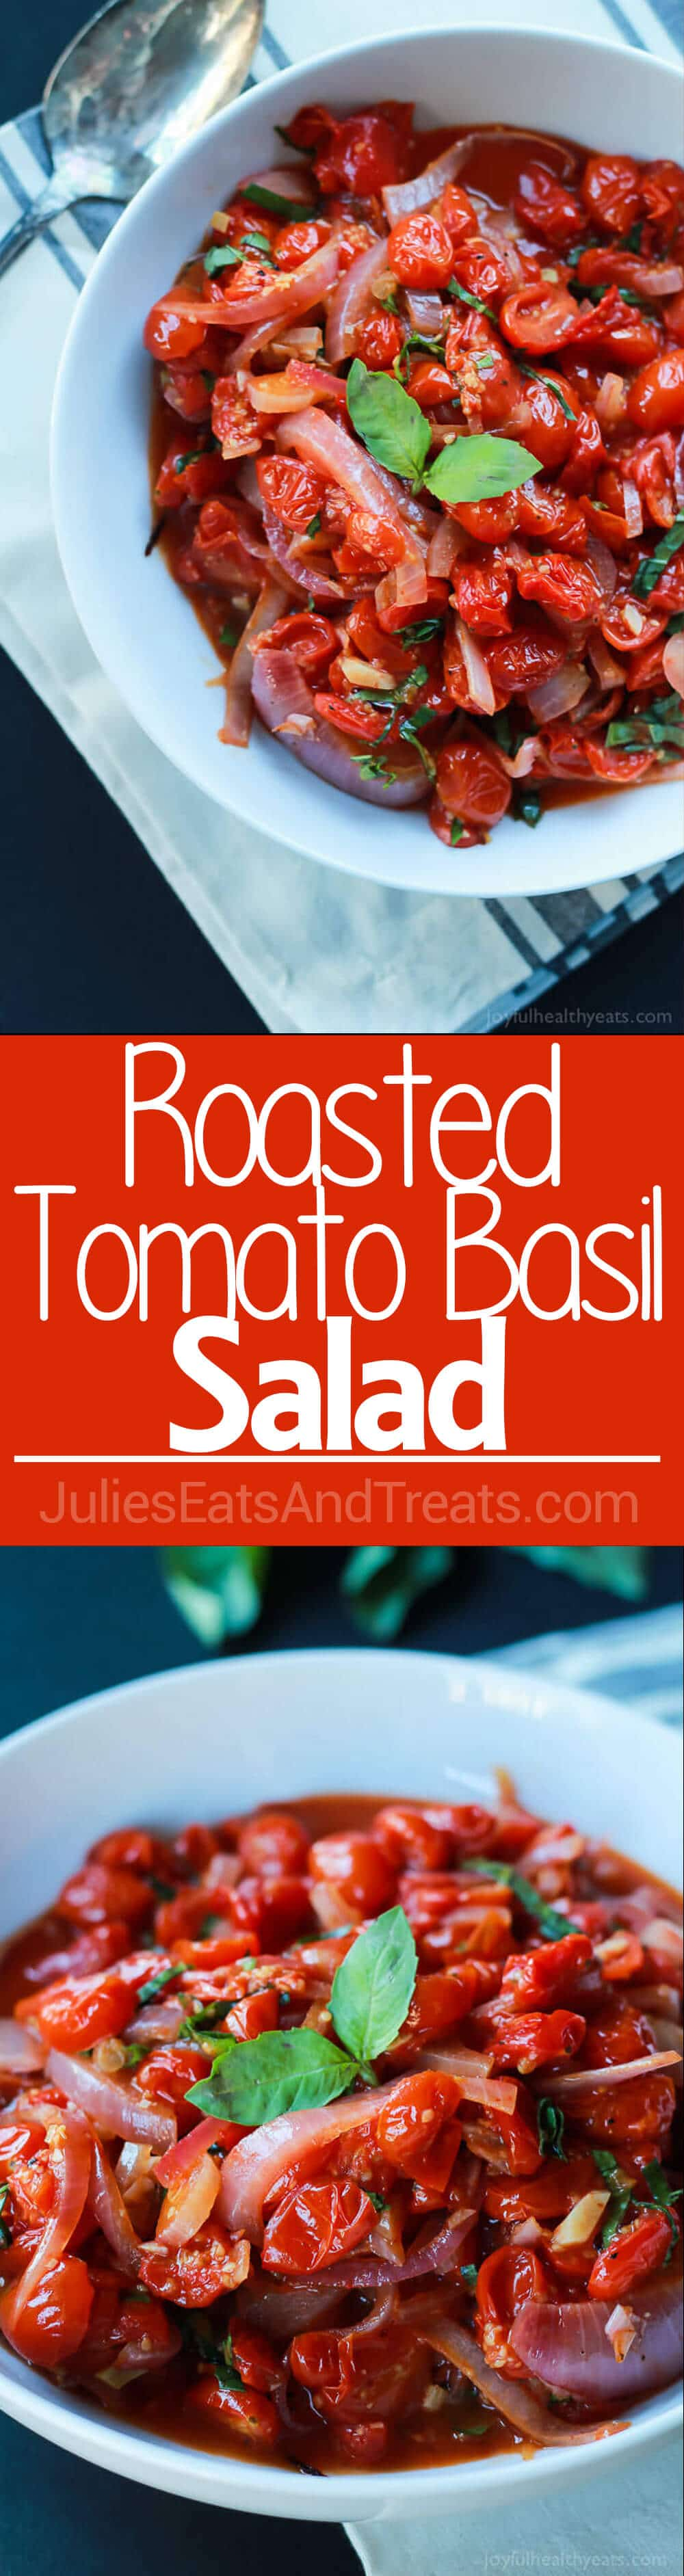 Done in 20 minutes this Roasted Tomato Basil Salad is easy, light, and healthy made from all fresh ingredients!